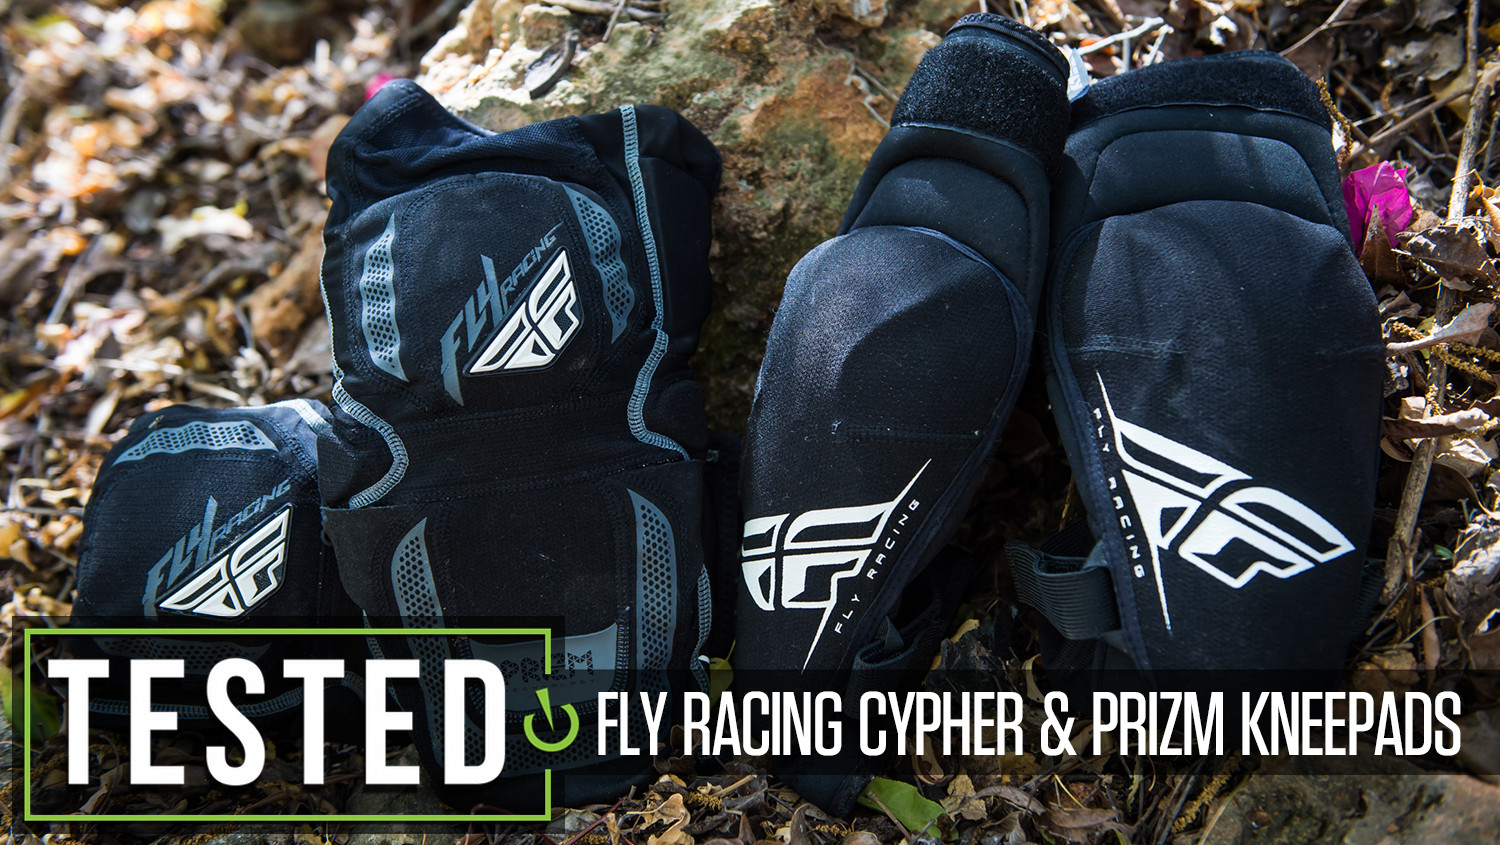 Tested: Fly Racing Cypher and Prizm Kneepads